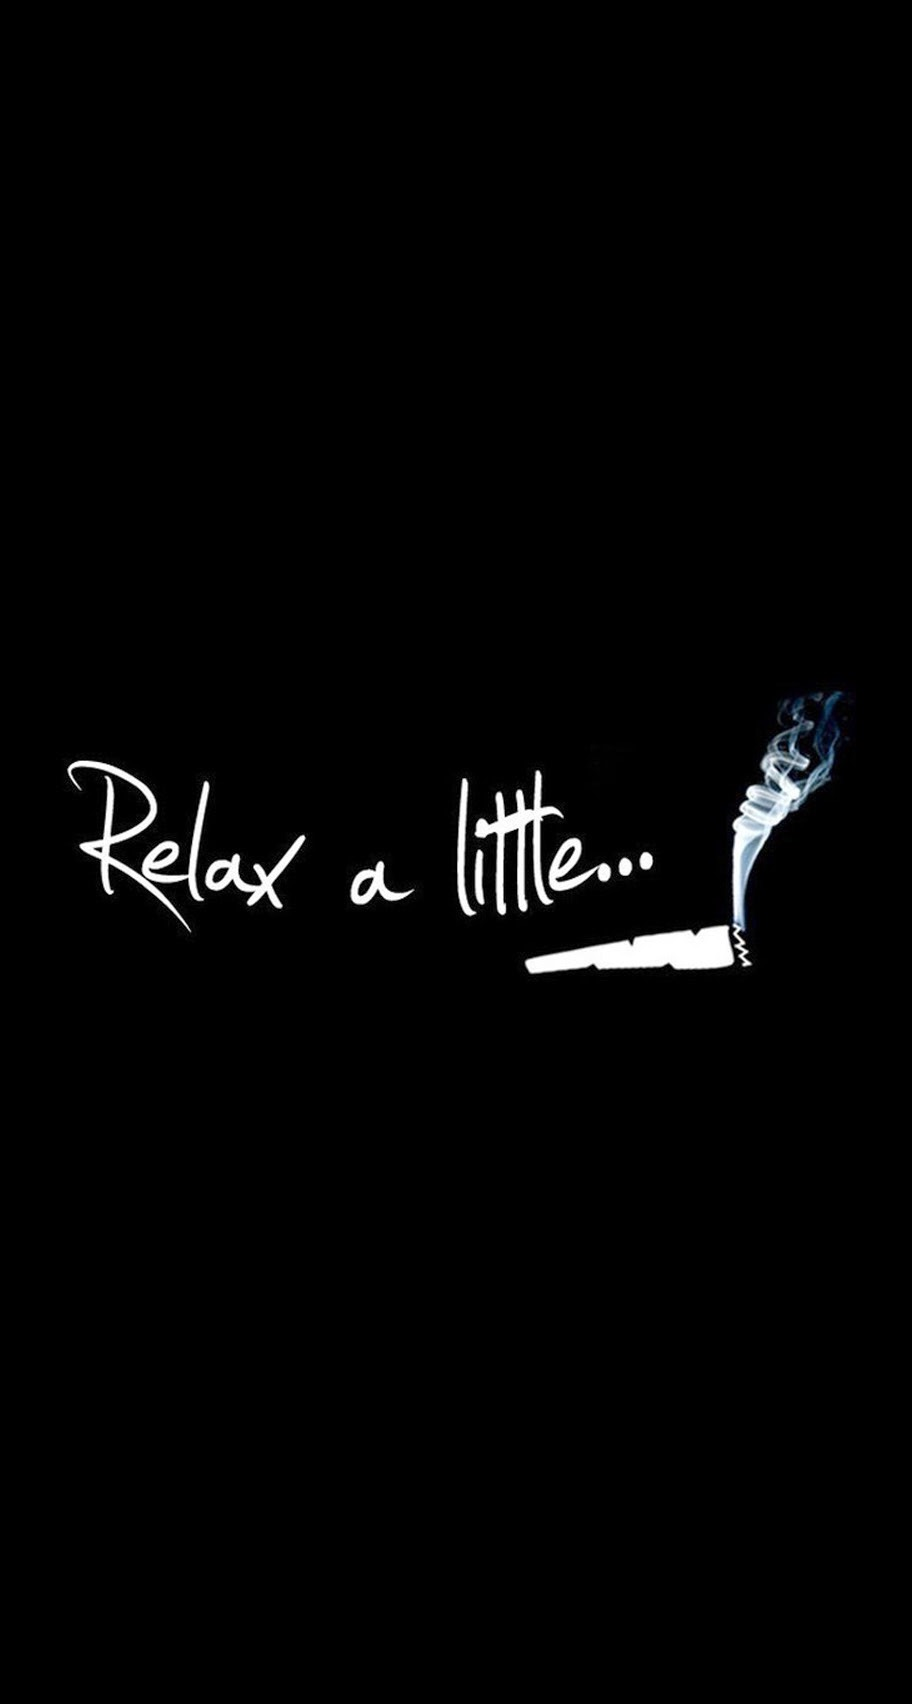 Hd wallpaper iphone 5 - Relax A Little Smoke Weed Iphone 6 Plus Hd Wallpaper